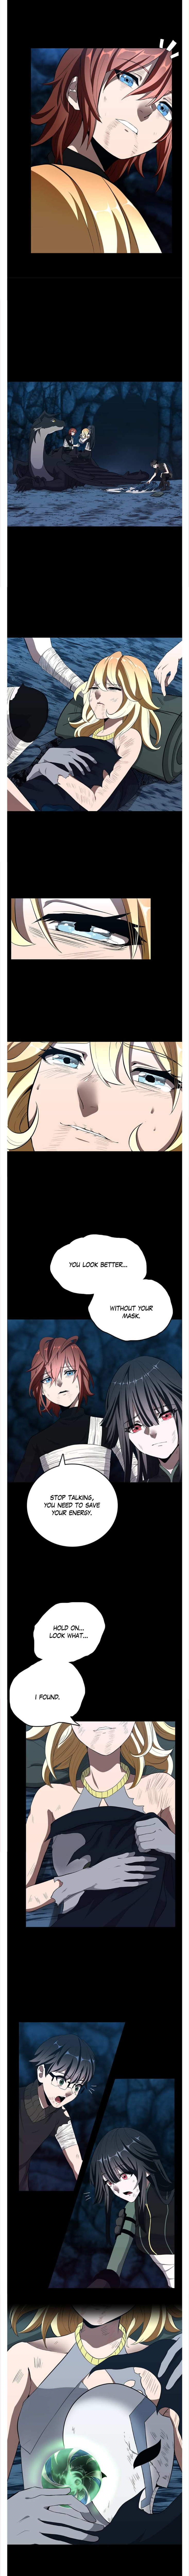 The Beginning After the End - chapter 71-eng-li